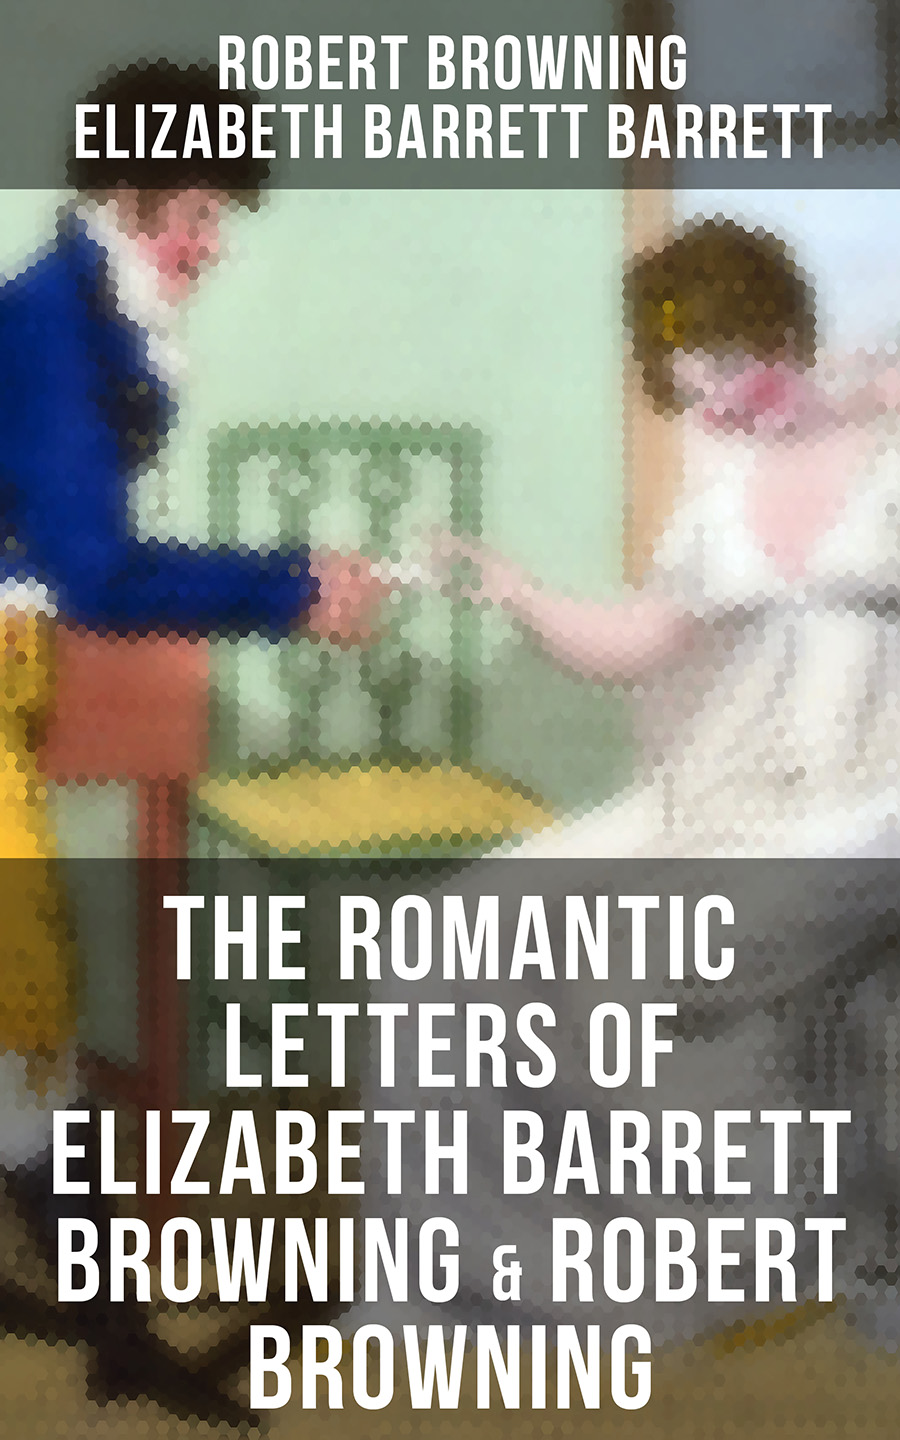 Robert Browning The Romantic Letters of Elizabeth Barrett Browning & Robert Browning цена и фото